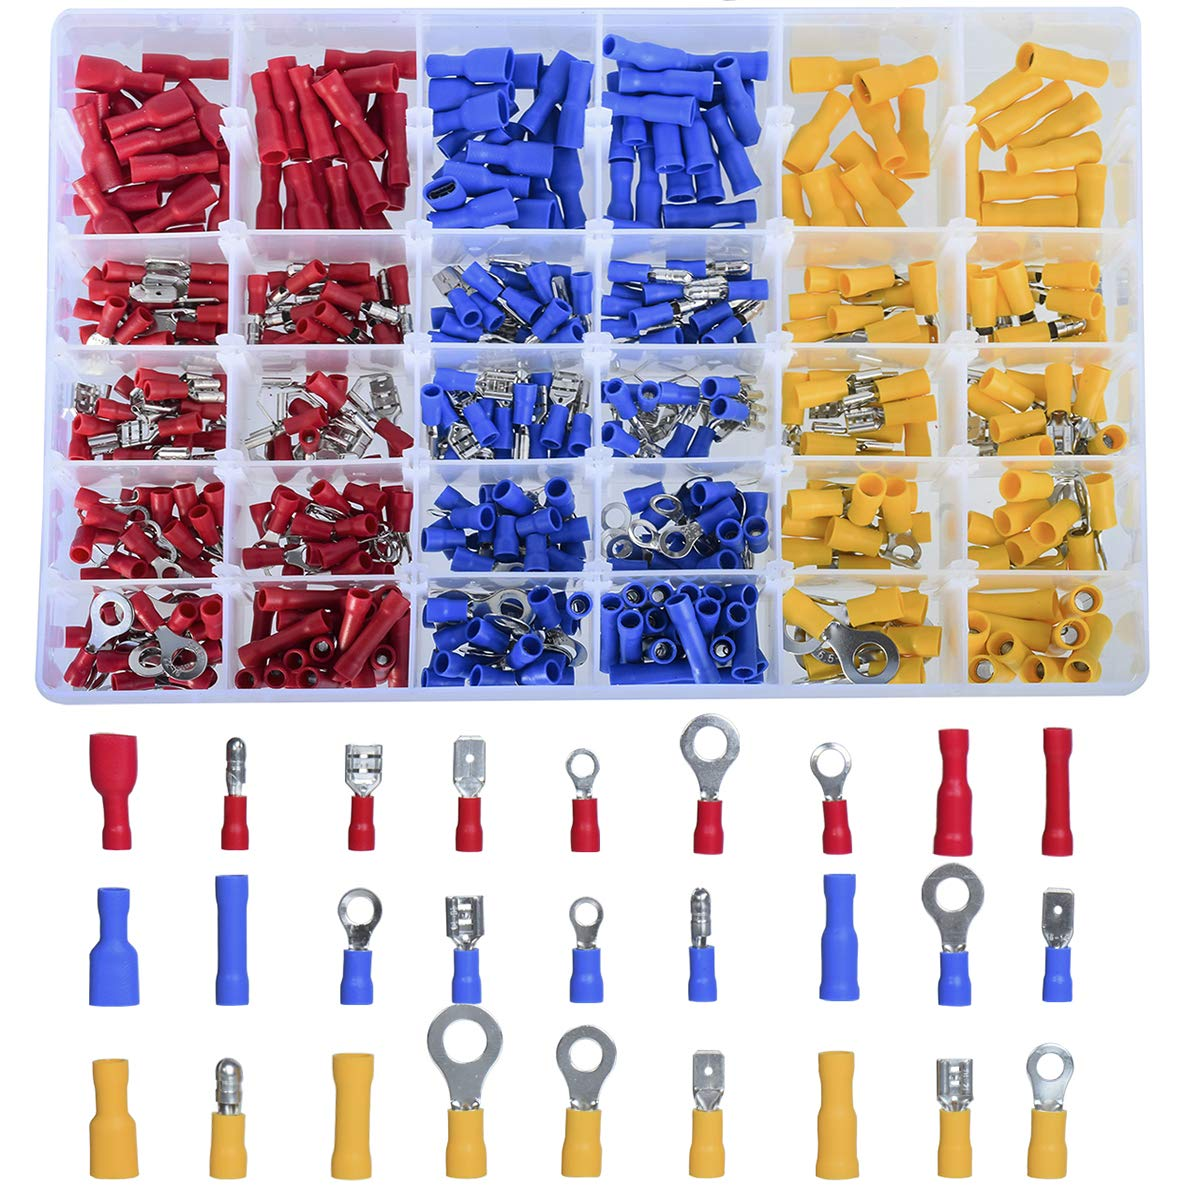 Sunsir 480pcs Wire Terminals Crimp Electrical Wire Connectors Mixed Assorted Lug Kit Insulated Spade Ring Fork Ring Bullet Male Female Auto Wiring Set with Premium Case